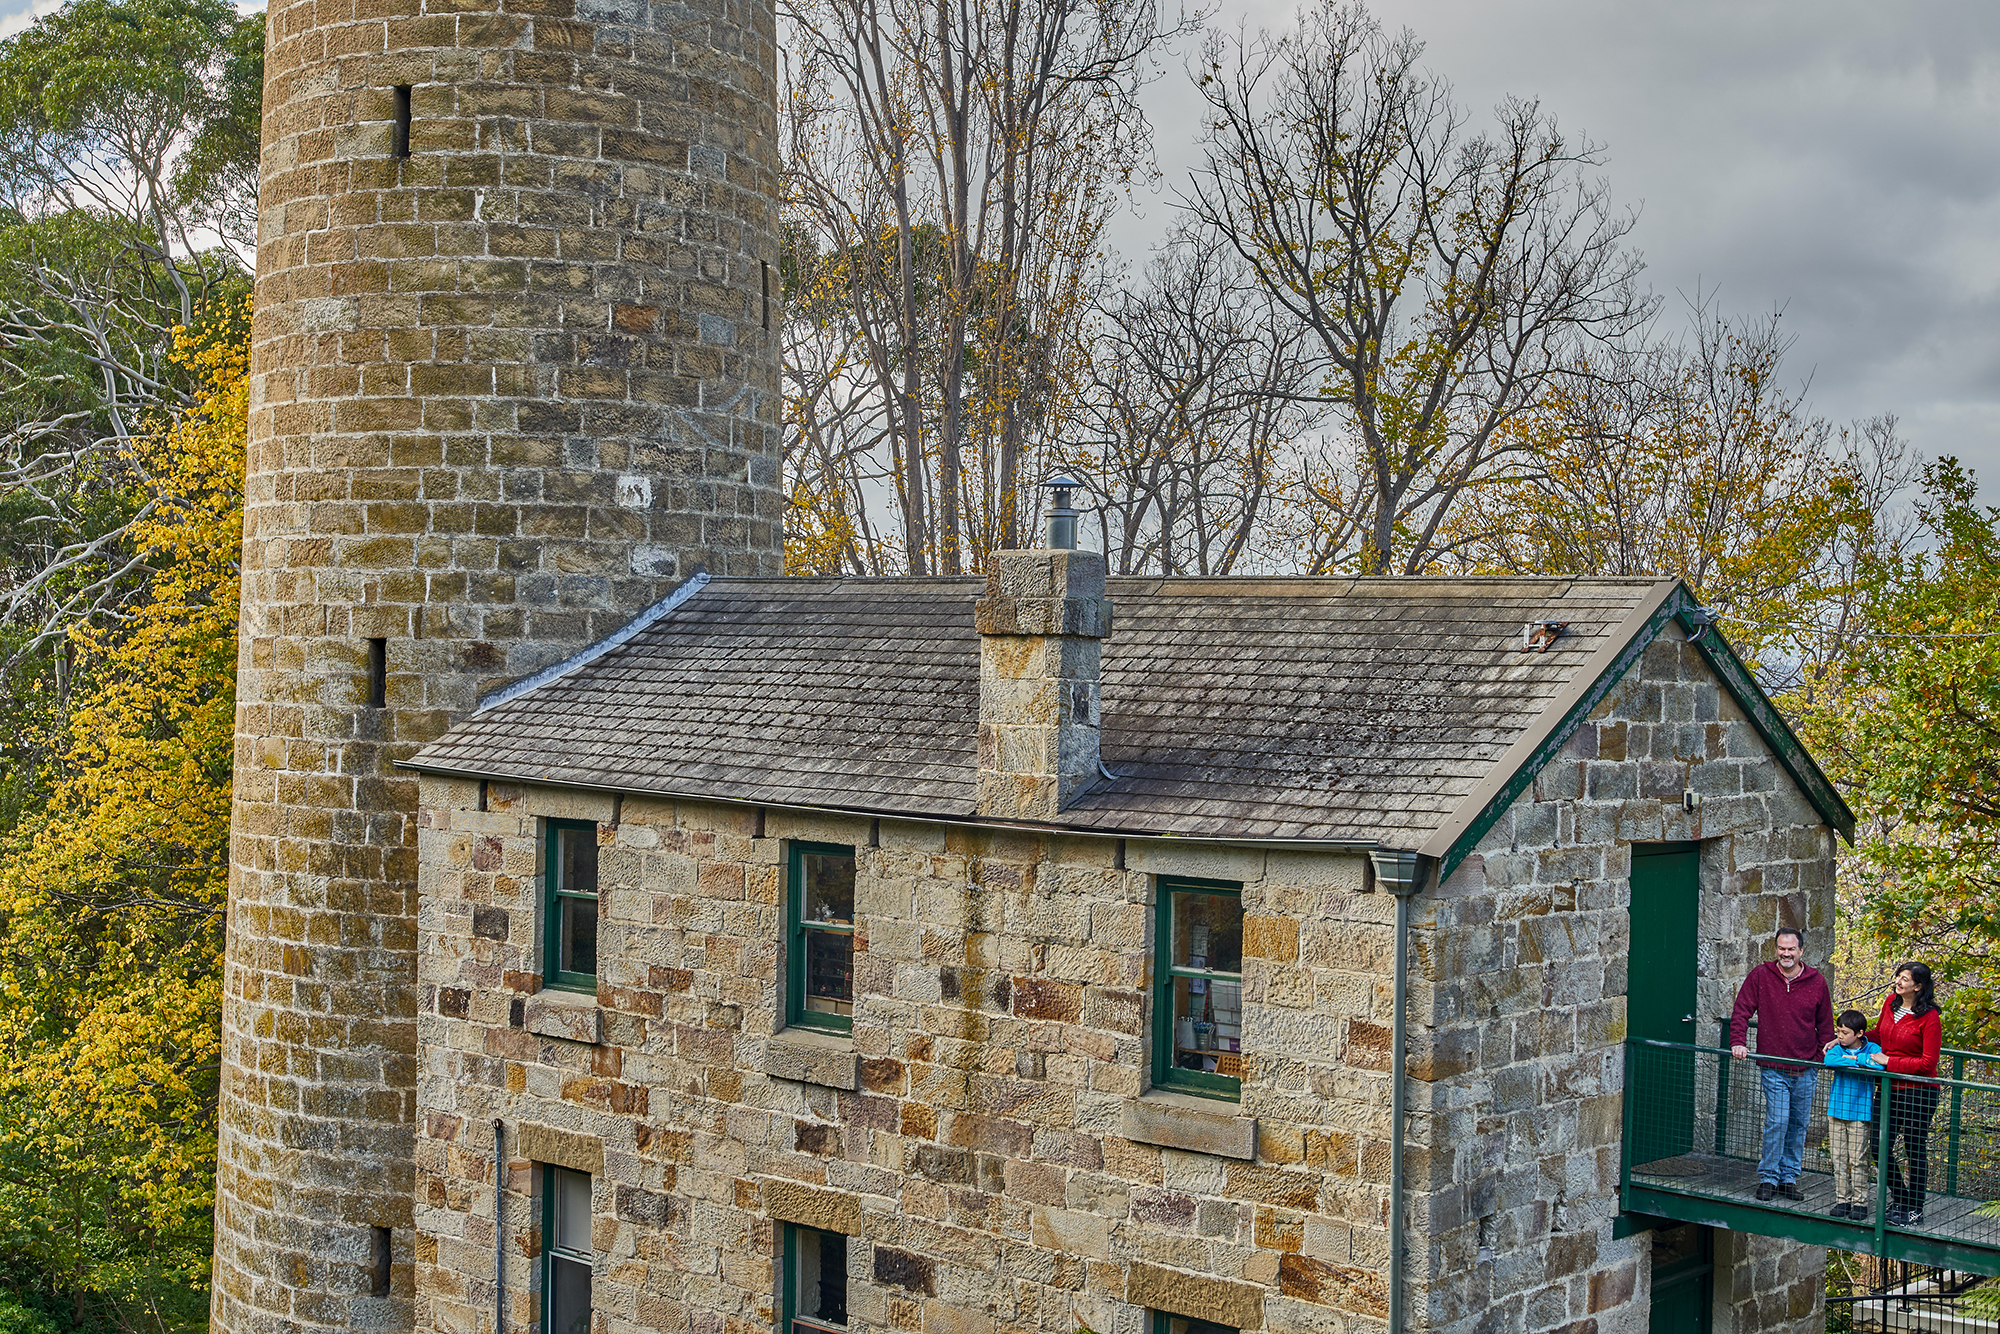 The Shot Tower at Taroona - an old historic sandstone building.